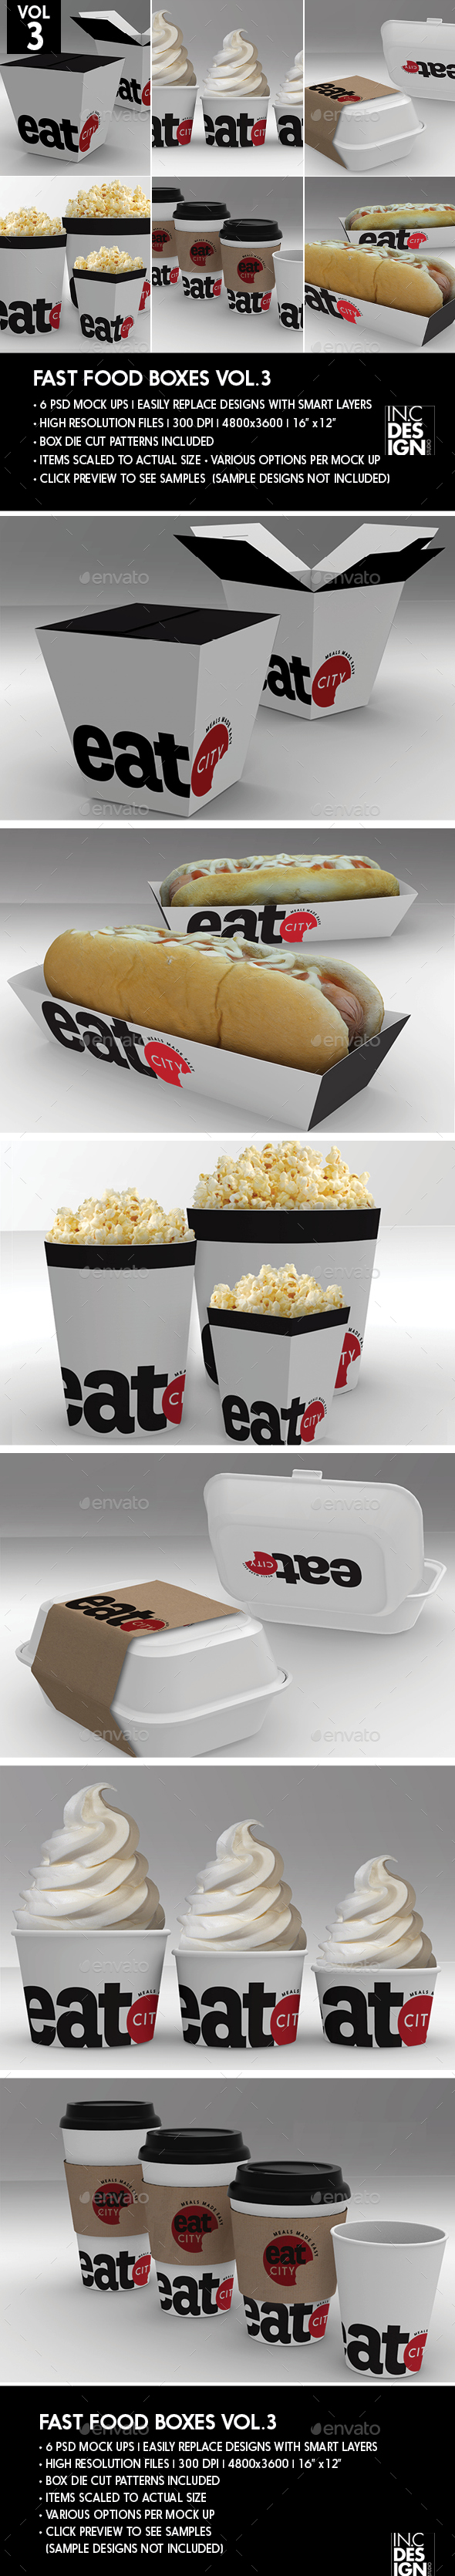 Fast Food Boxes Vol.3:Take Out Packaging Mock Ups